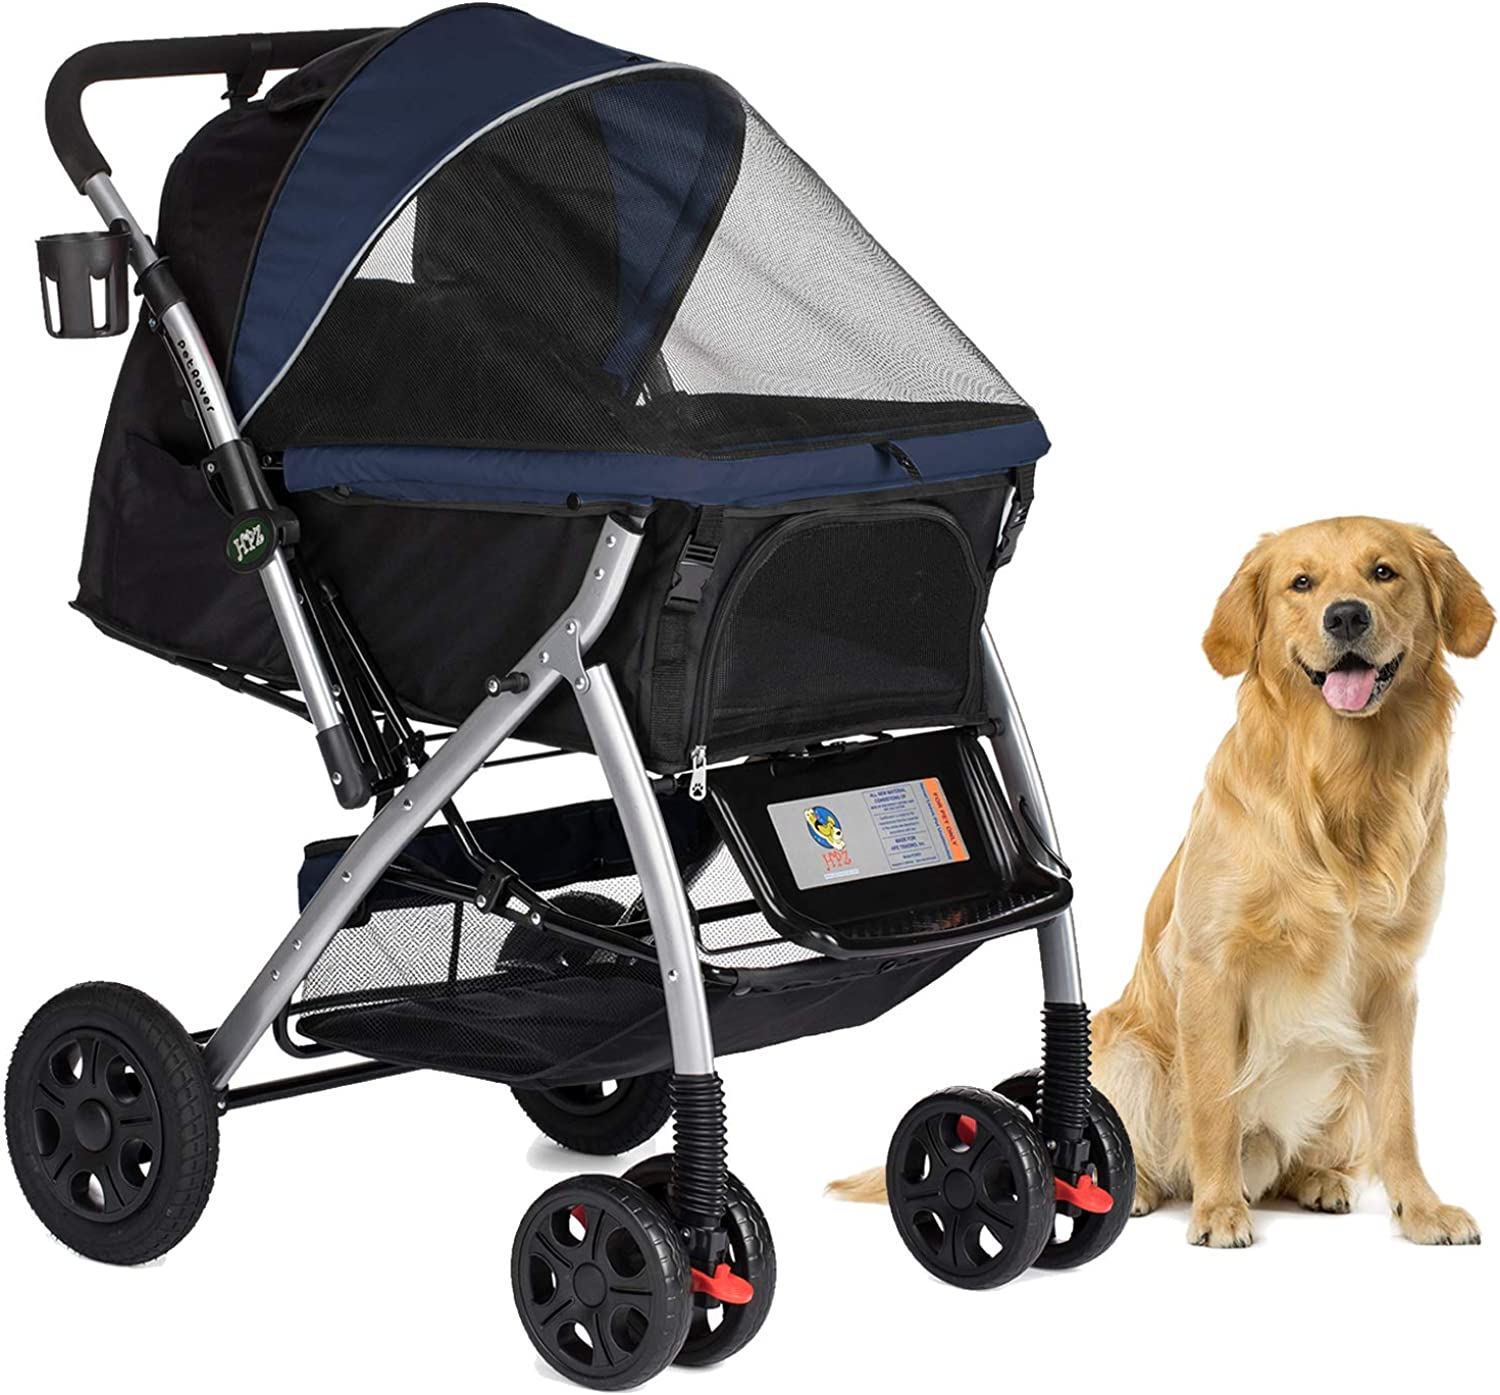 HPZ Pet Rover Premium Heavy Duty Dog Cat Pet Stroller Travel Carriage with Congreenible Compartment Zipperless Entry Reversible Handlebar PumpFree Rubber Tires for Small, Medium, Large Pets